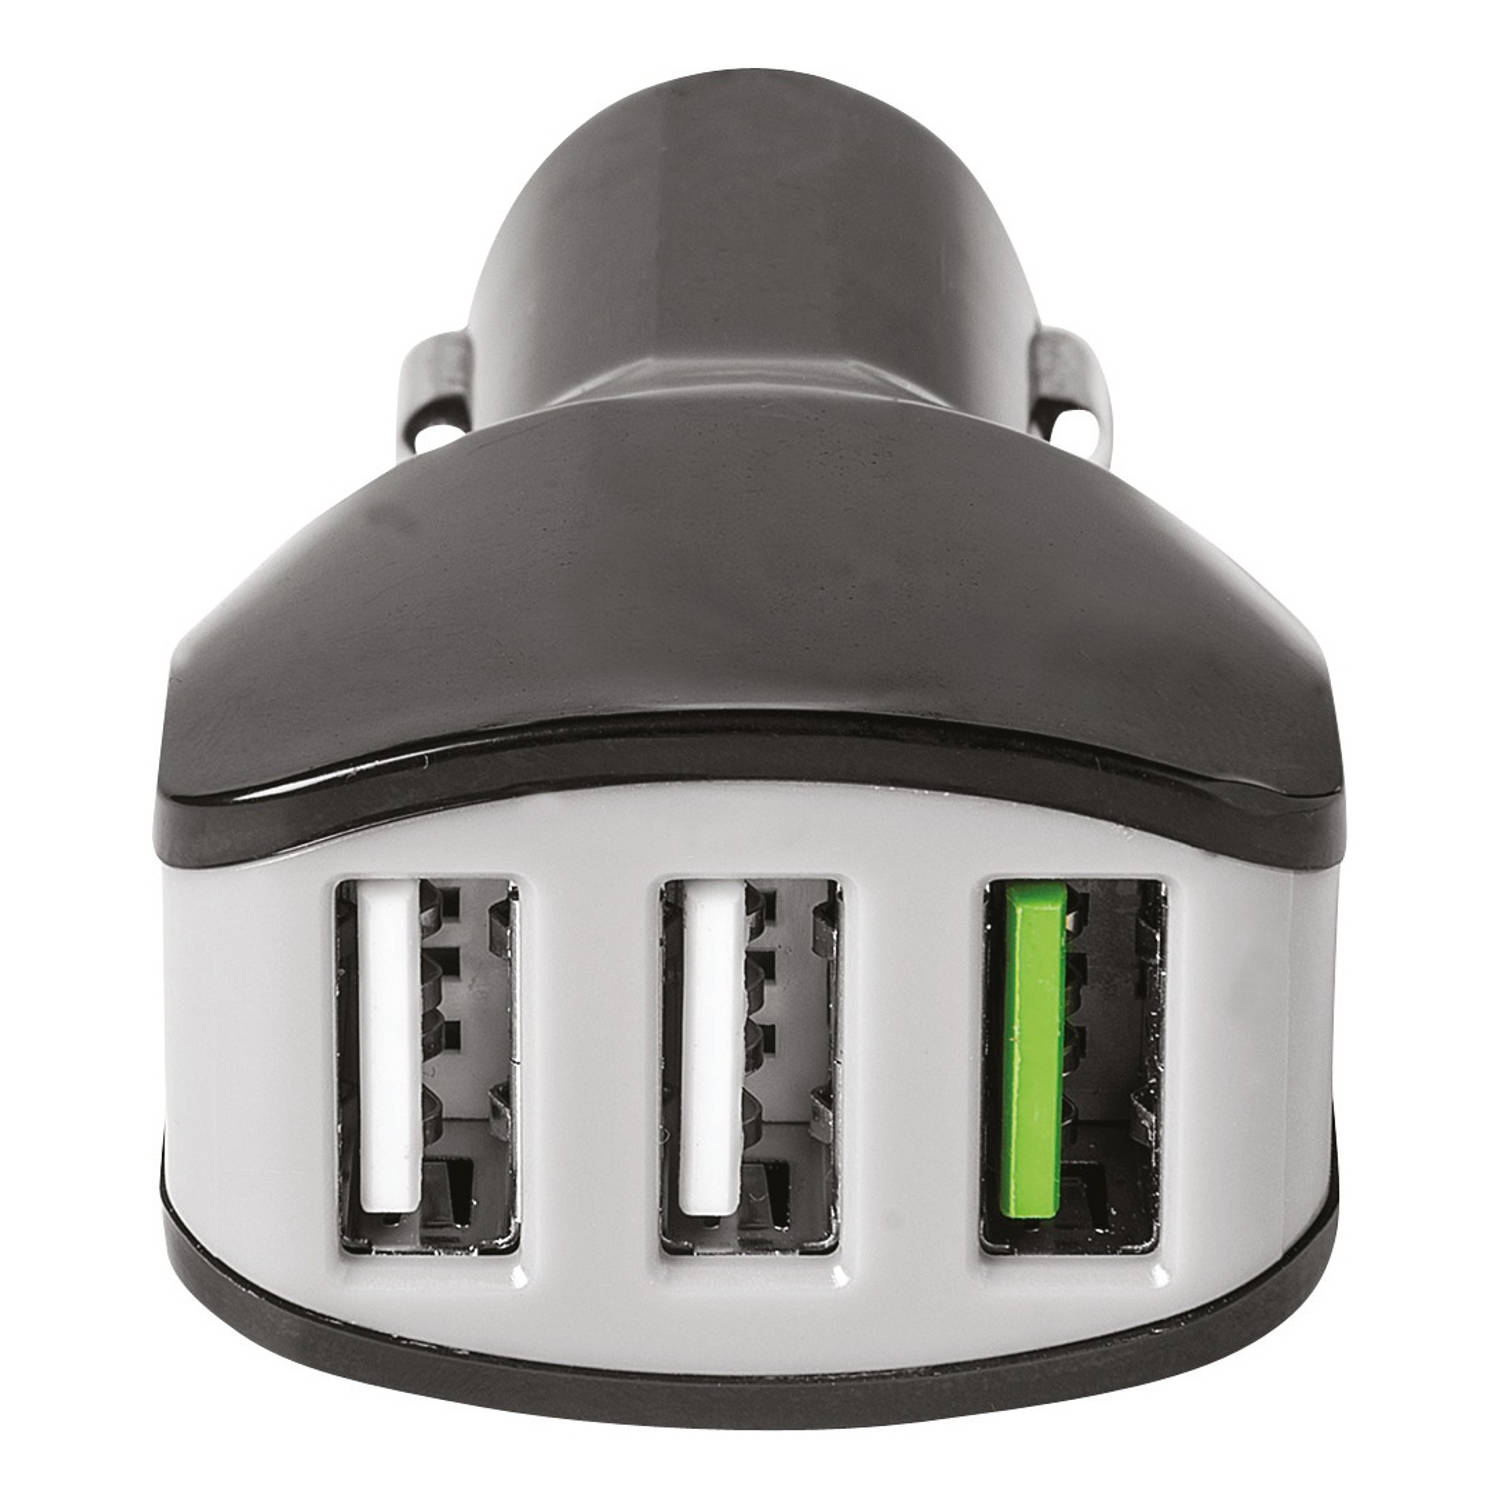 Celly autolader 3 USB-poorten 12/24V 4.4A zwart